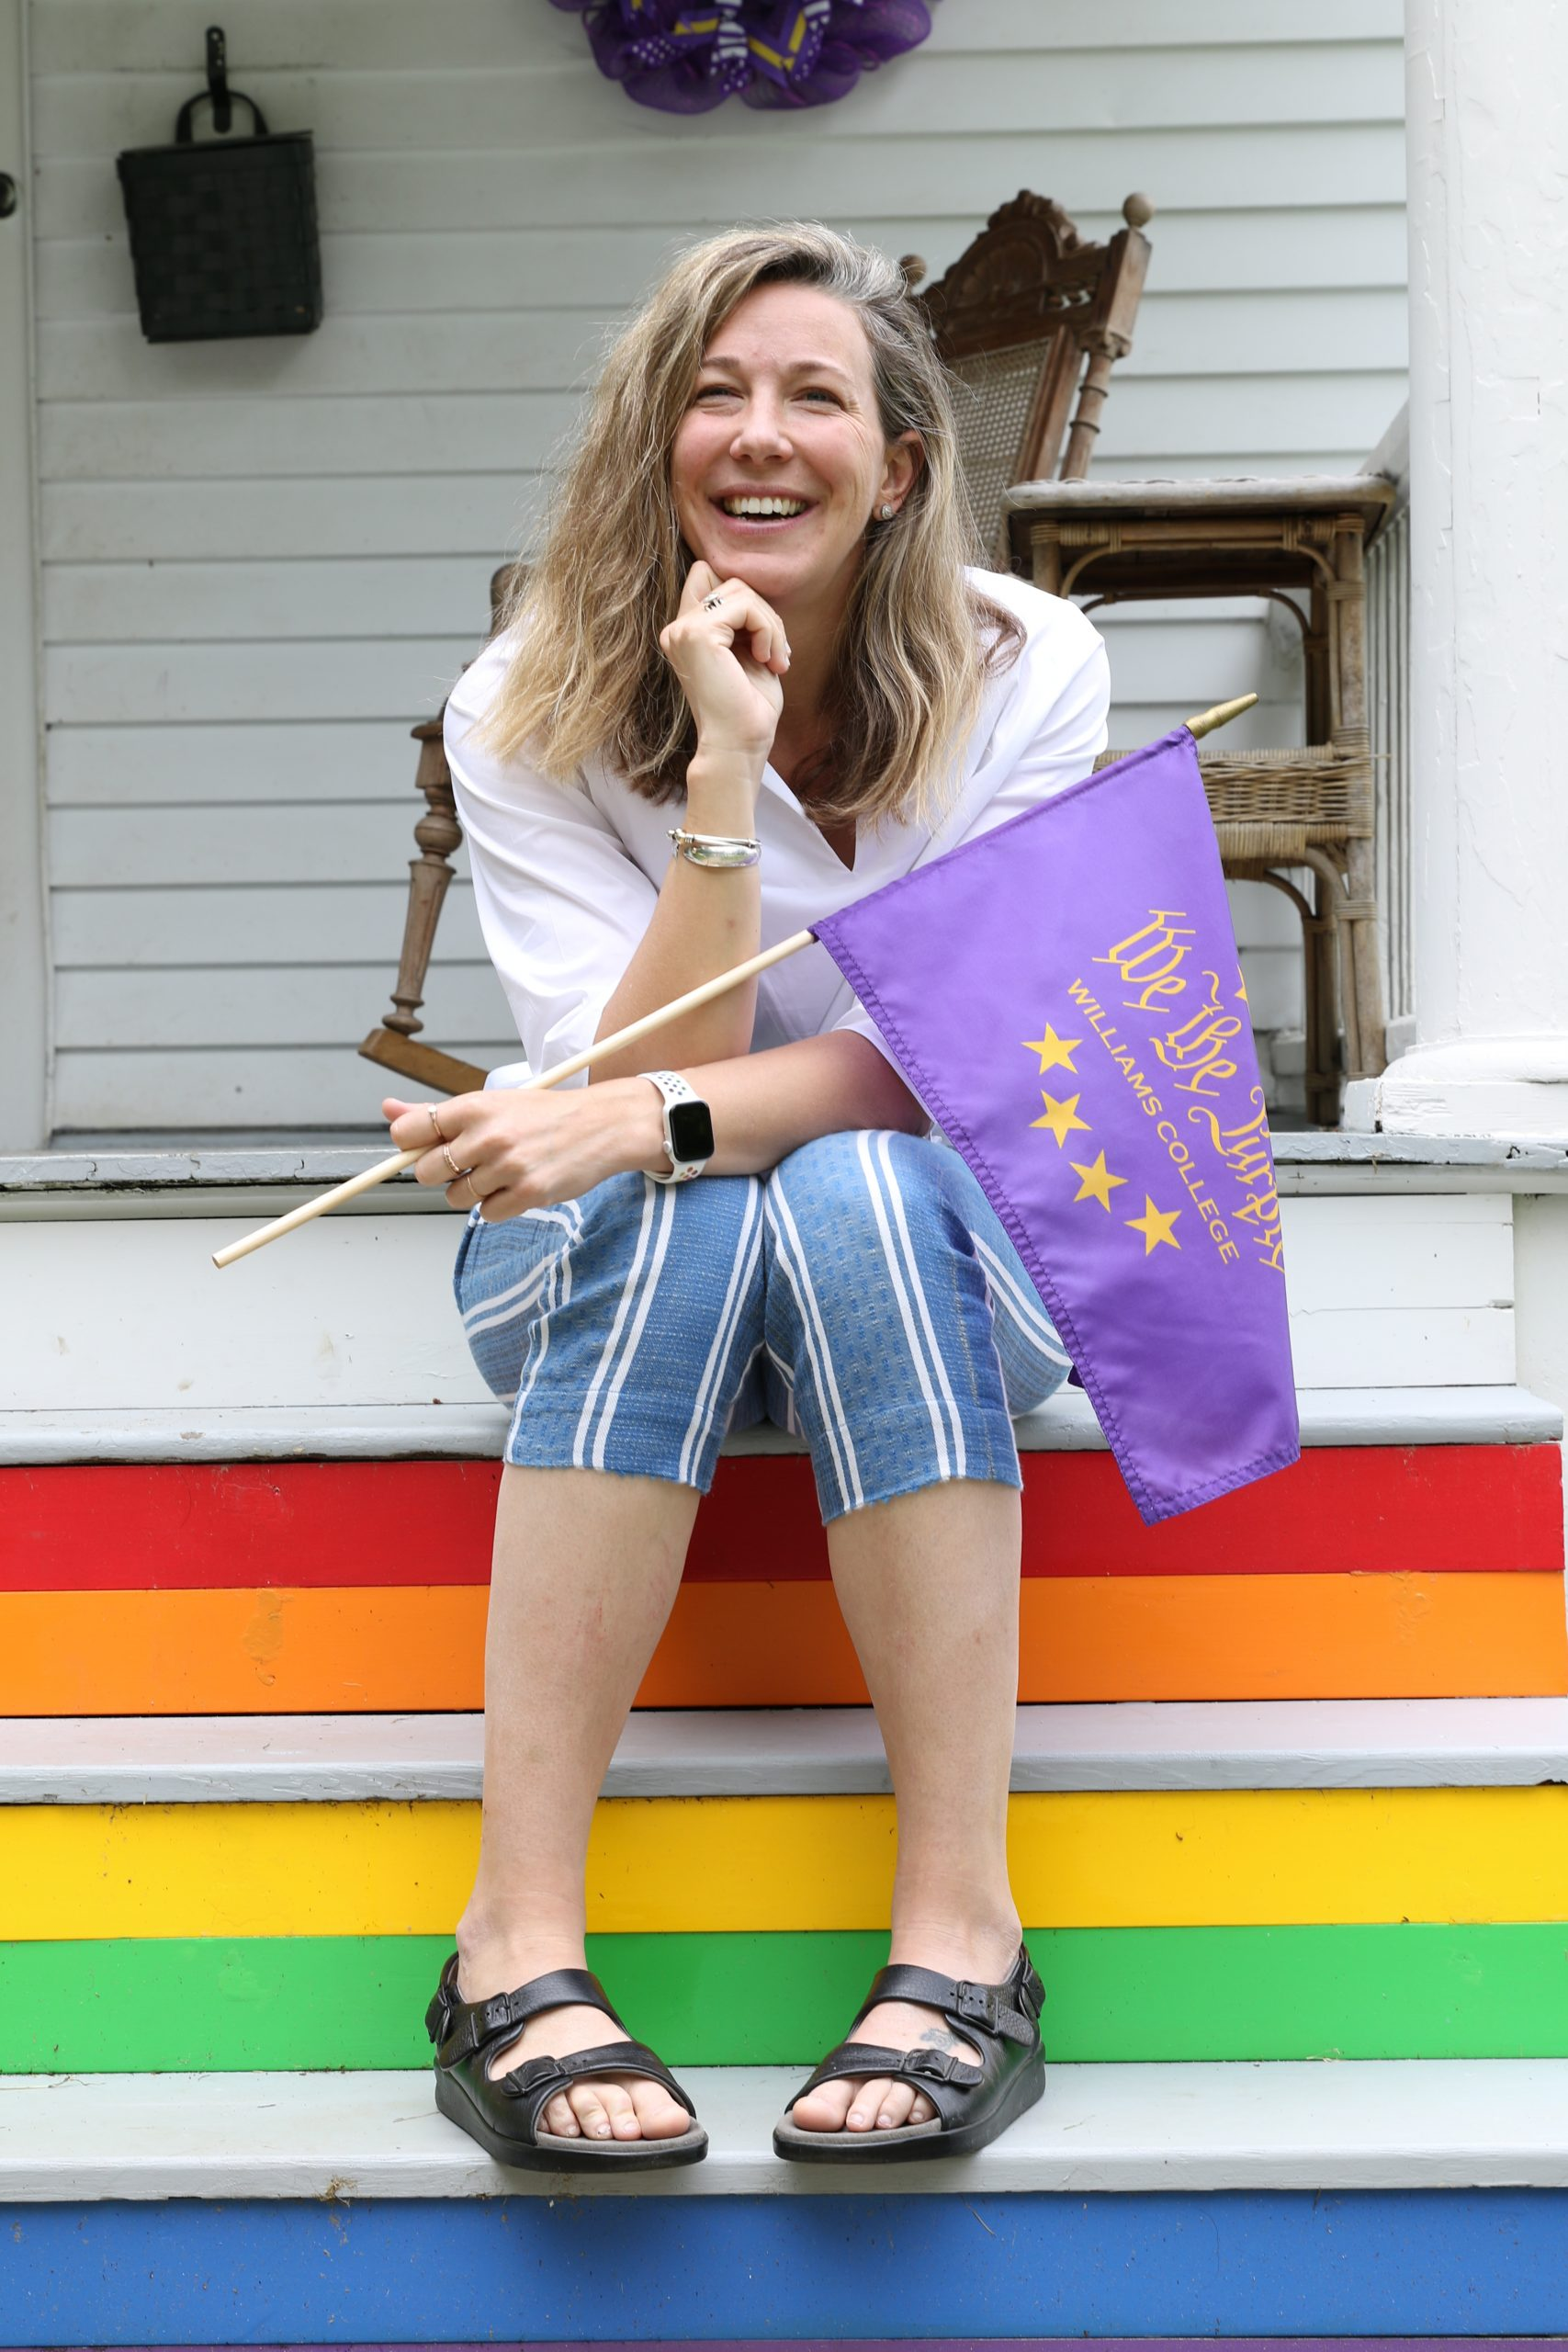 photo of a woman sitting on stairs painted with rainbow colors and holding a purple flag. She is wearing blue striped short pants, a white top, wedges, and has blond hair.